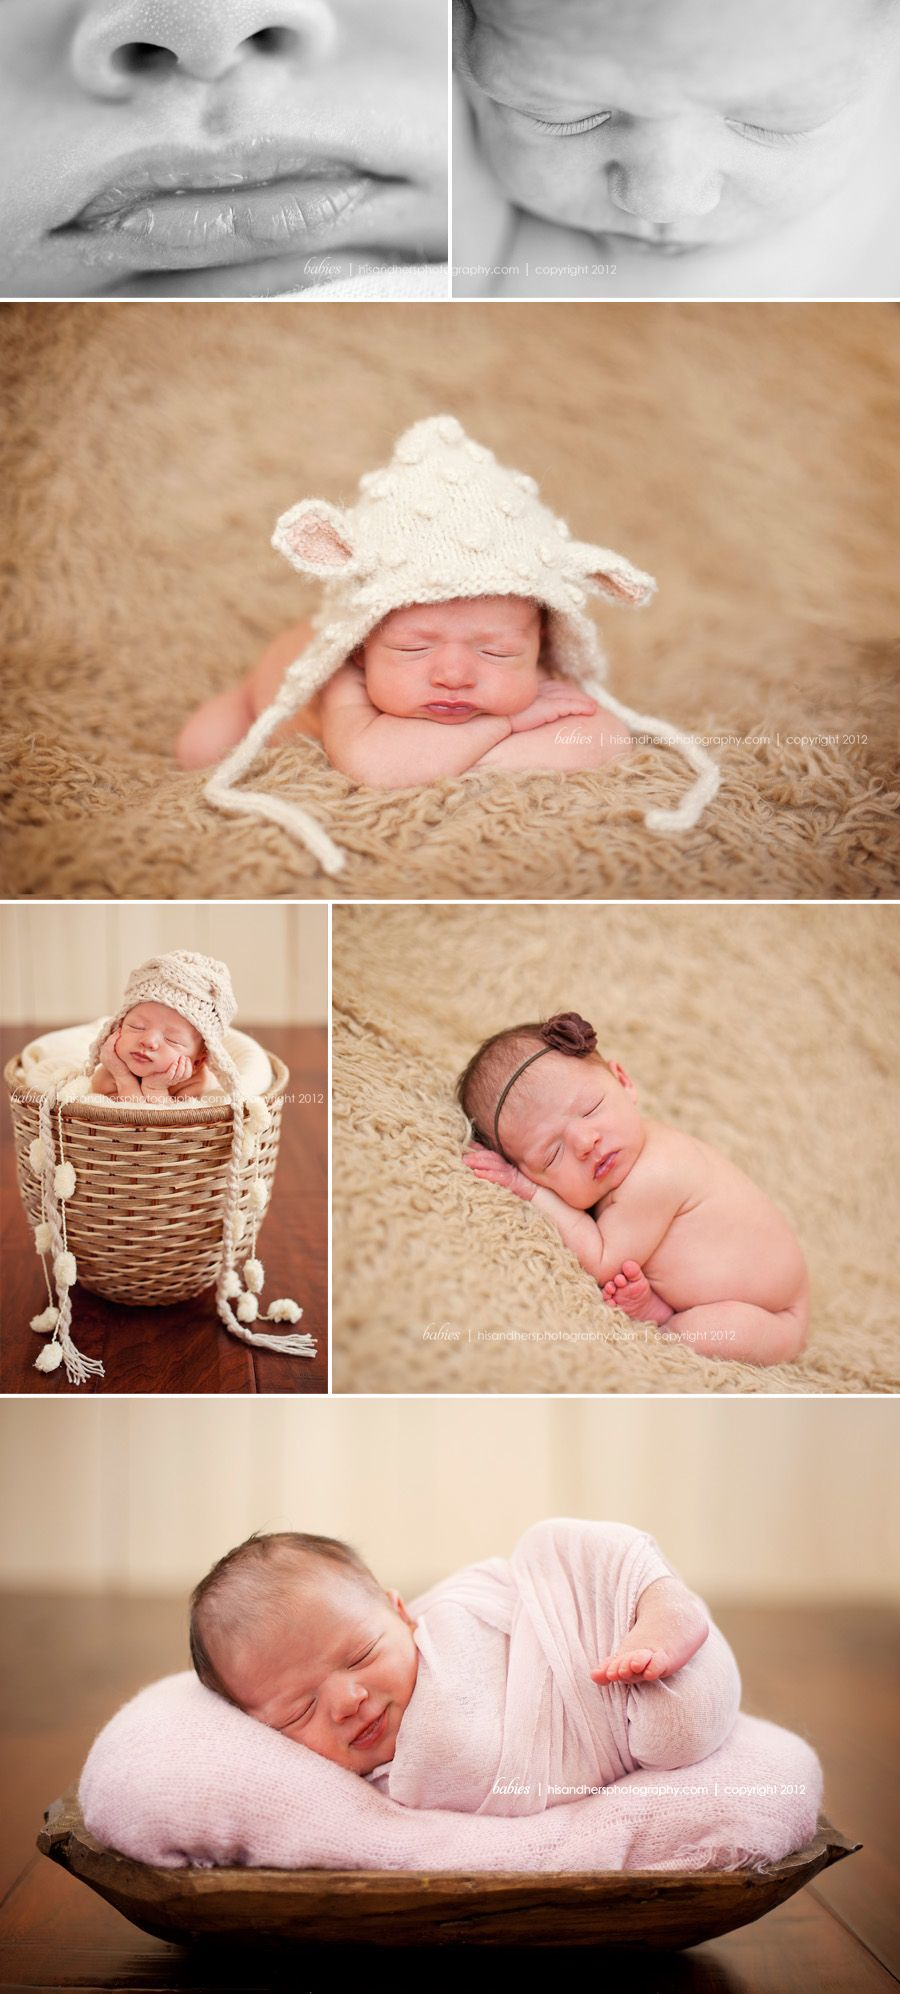 des moines iowa ames iowa newborn photographer baby pictures photo studio